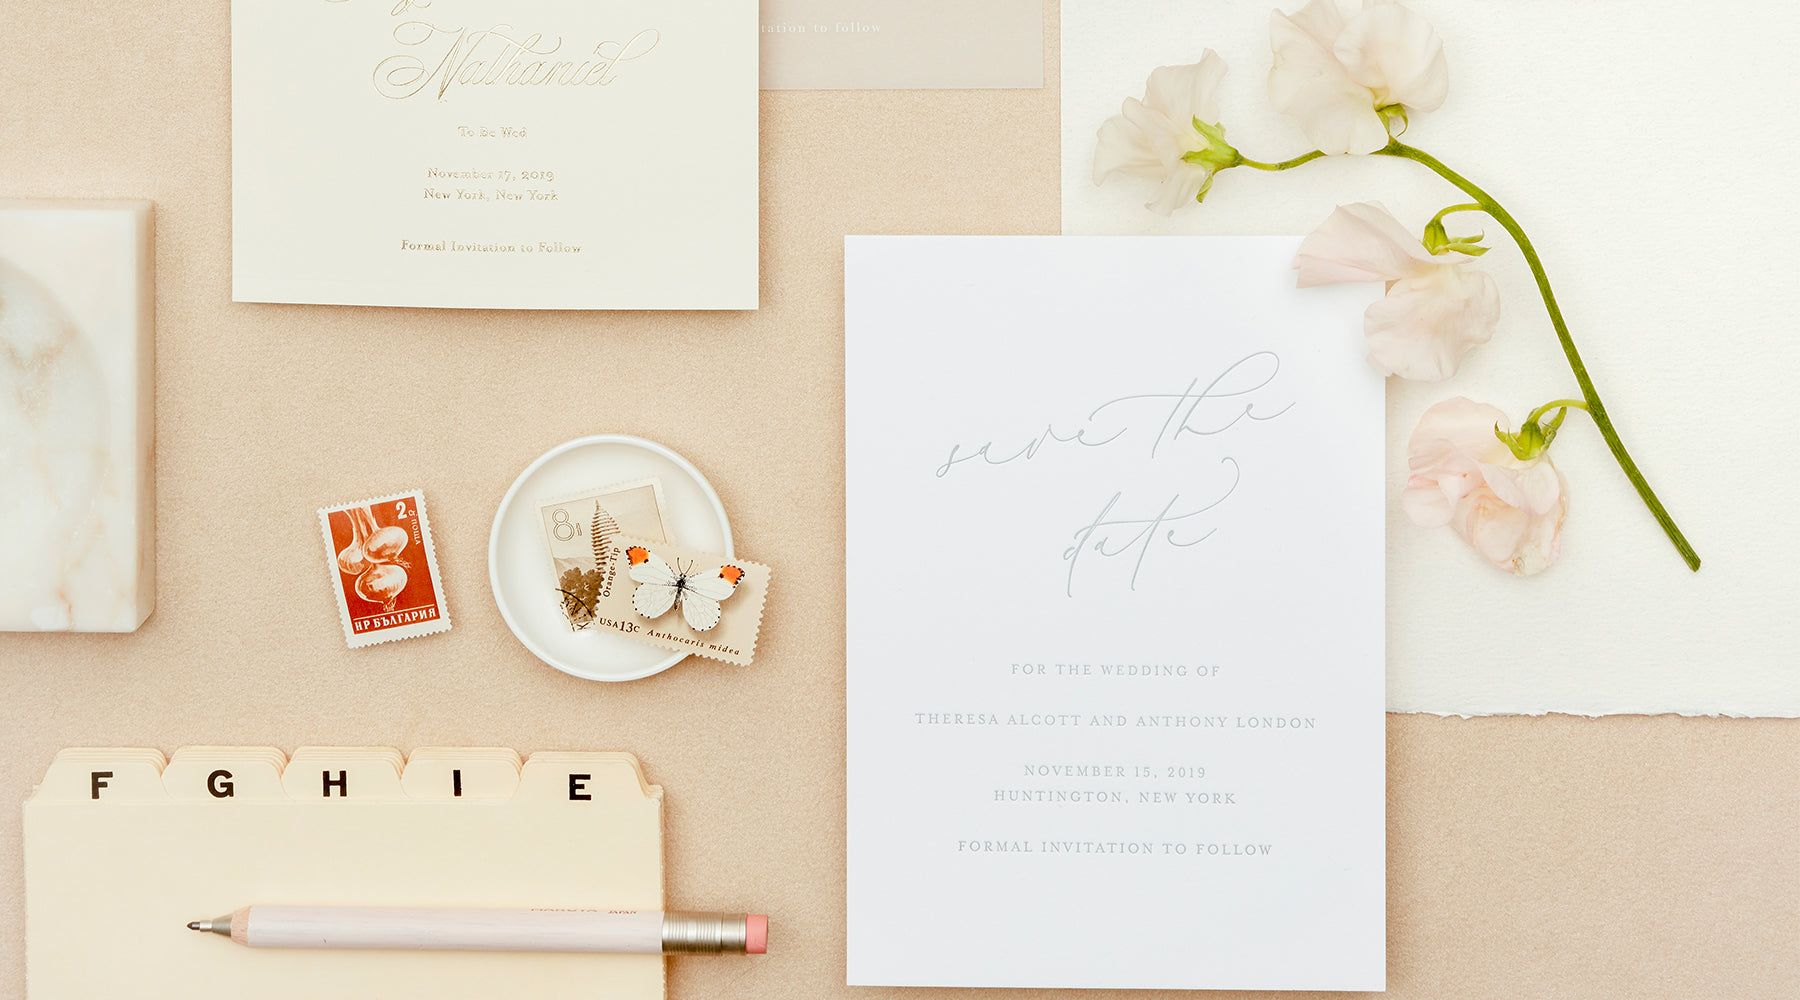 The Complete Guide to Stunning Save the Date Cards